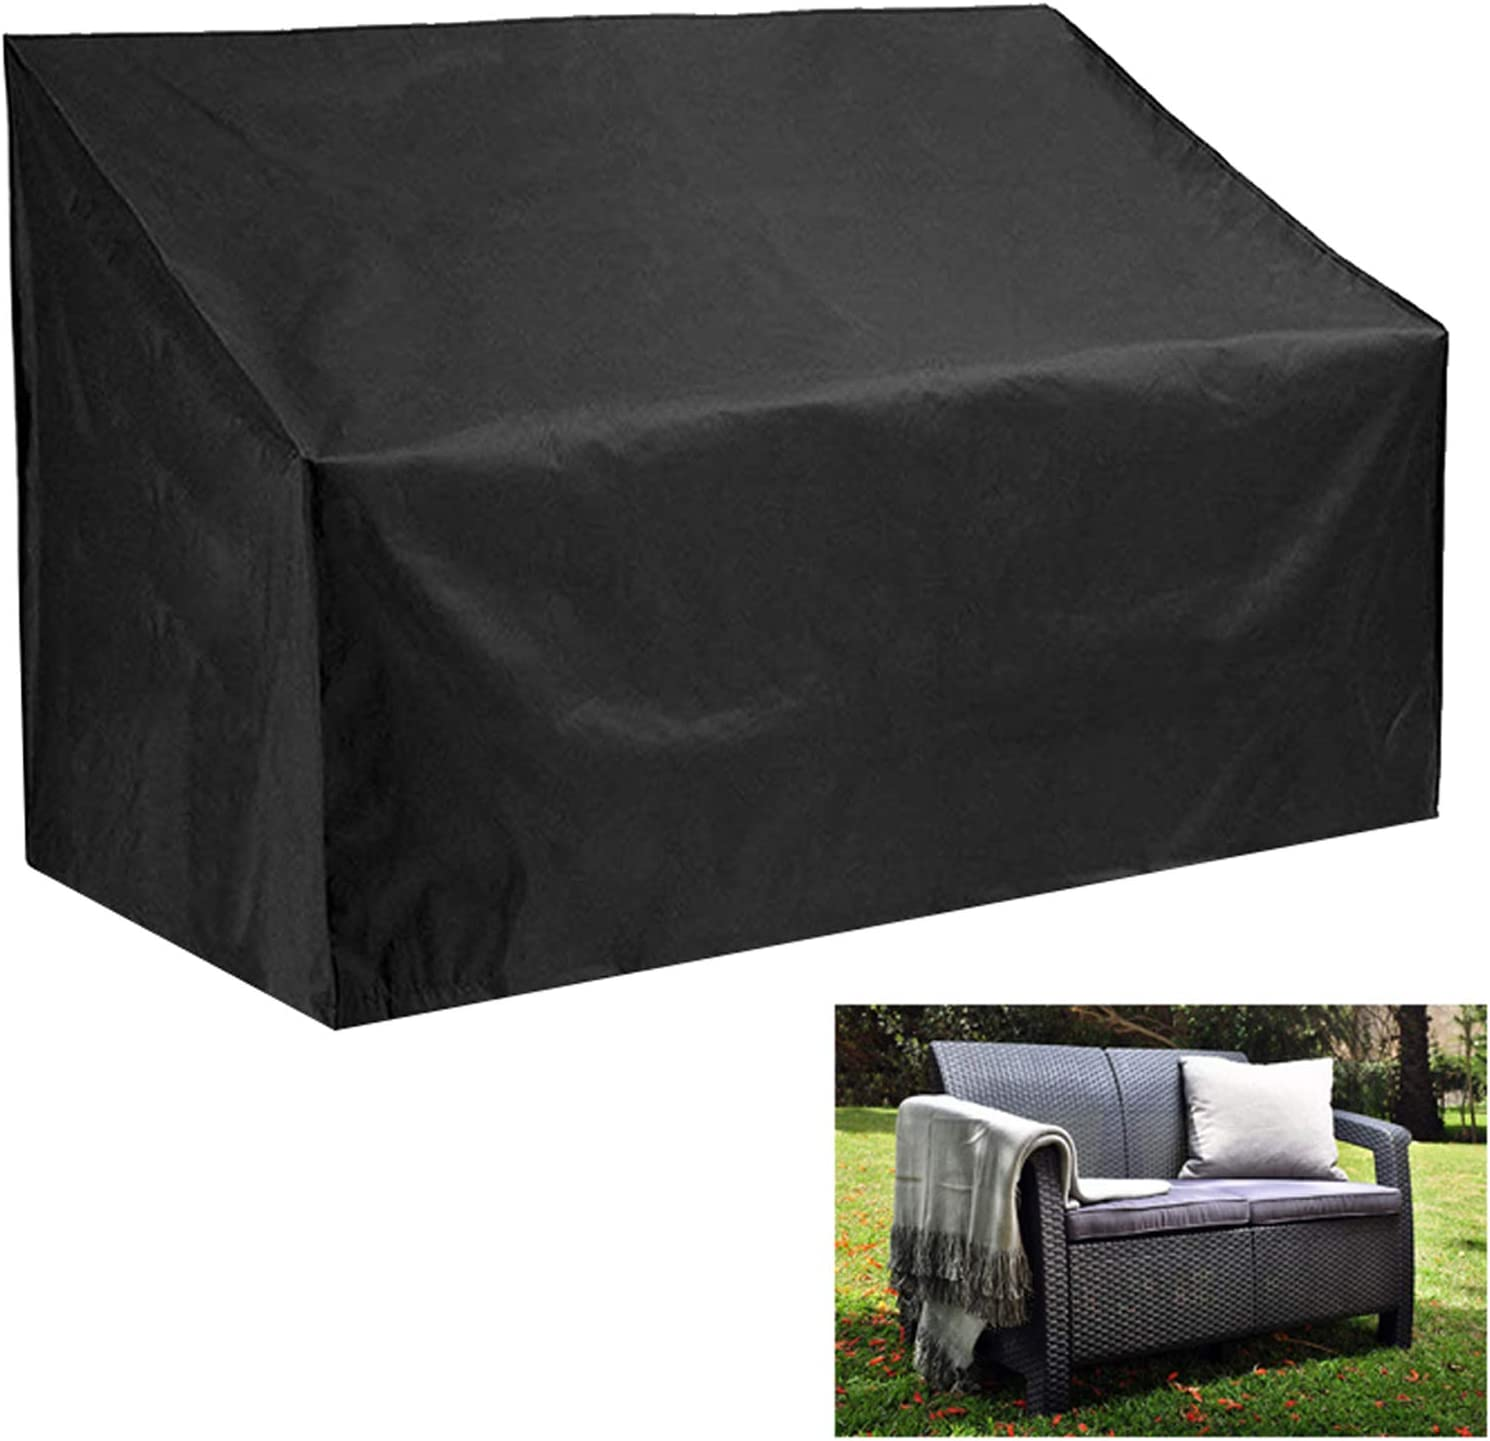 Oslimea Patio Loveseat Cover Patio Bench Cover 3 Seater, Durable Waterproof Outdoor Long Chair Cover Lounge Sofa Cover Loveseat Cover, Outdoor Patio Furniture Cover for Loveseats, Black: Kitchen & Dining